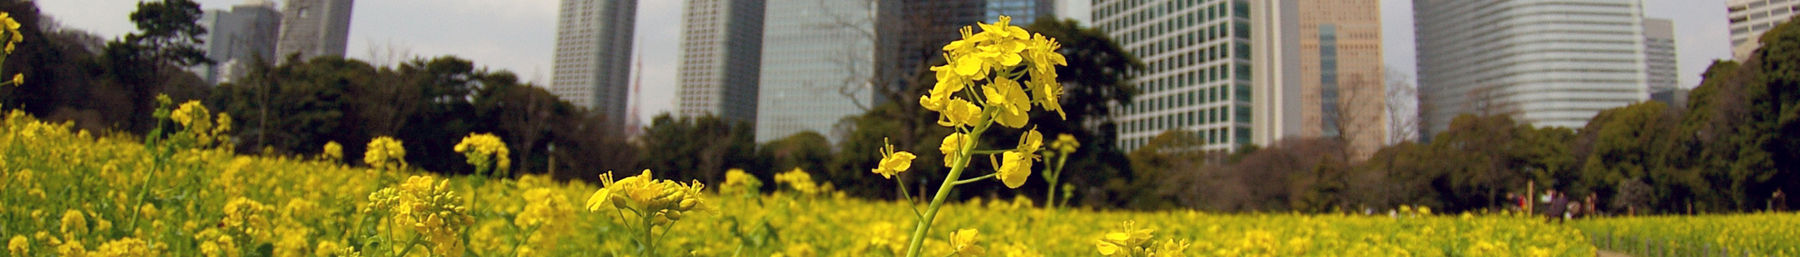 Rape blossoms field and shiodome skyscrapers wikivoyage banner.JPG